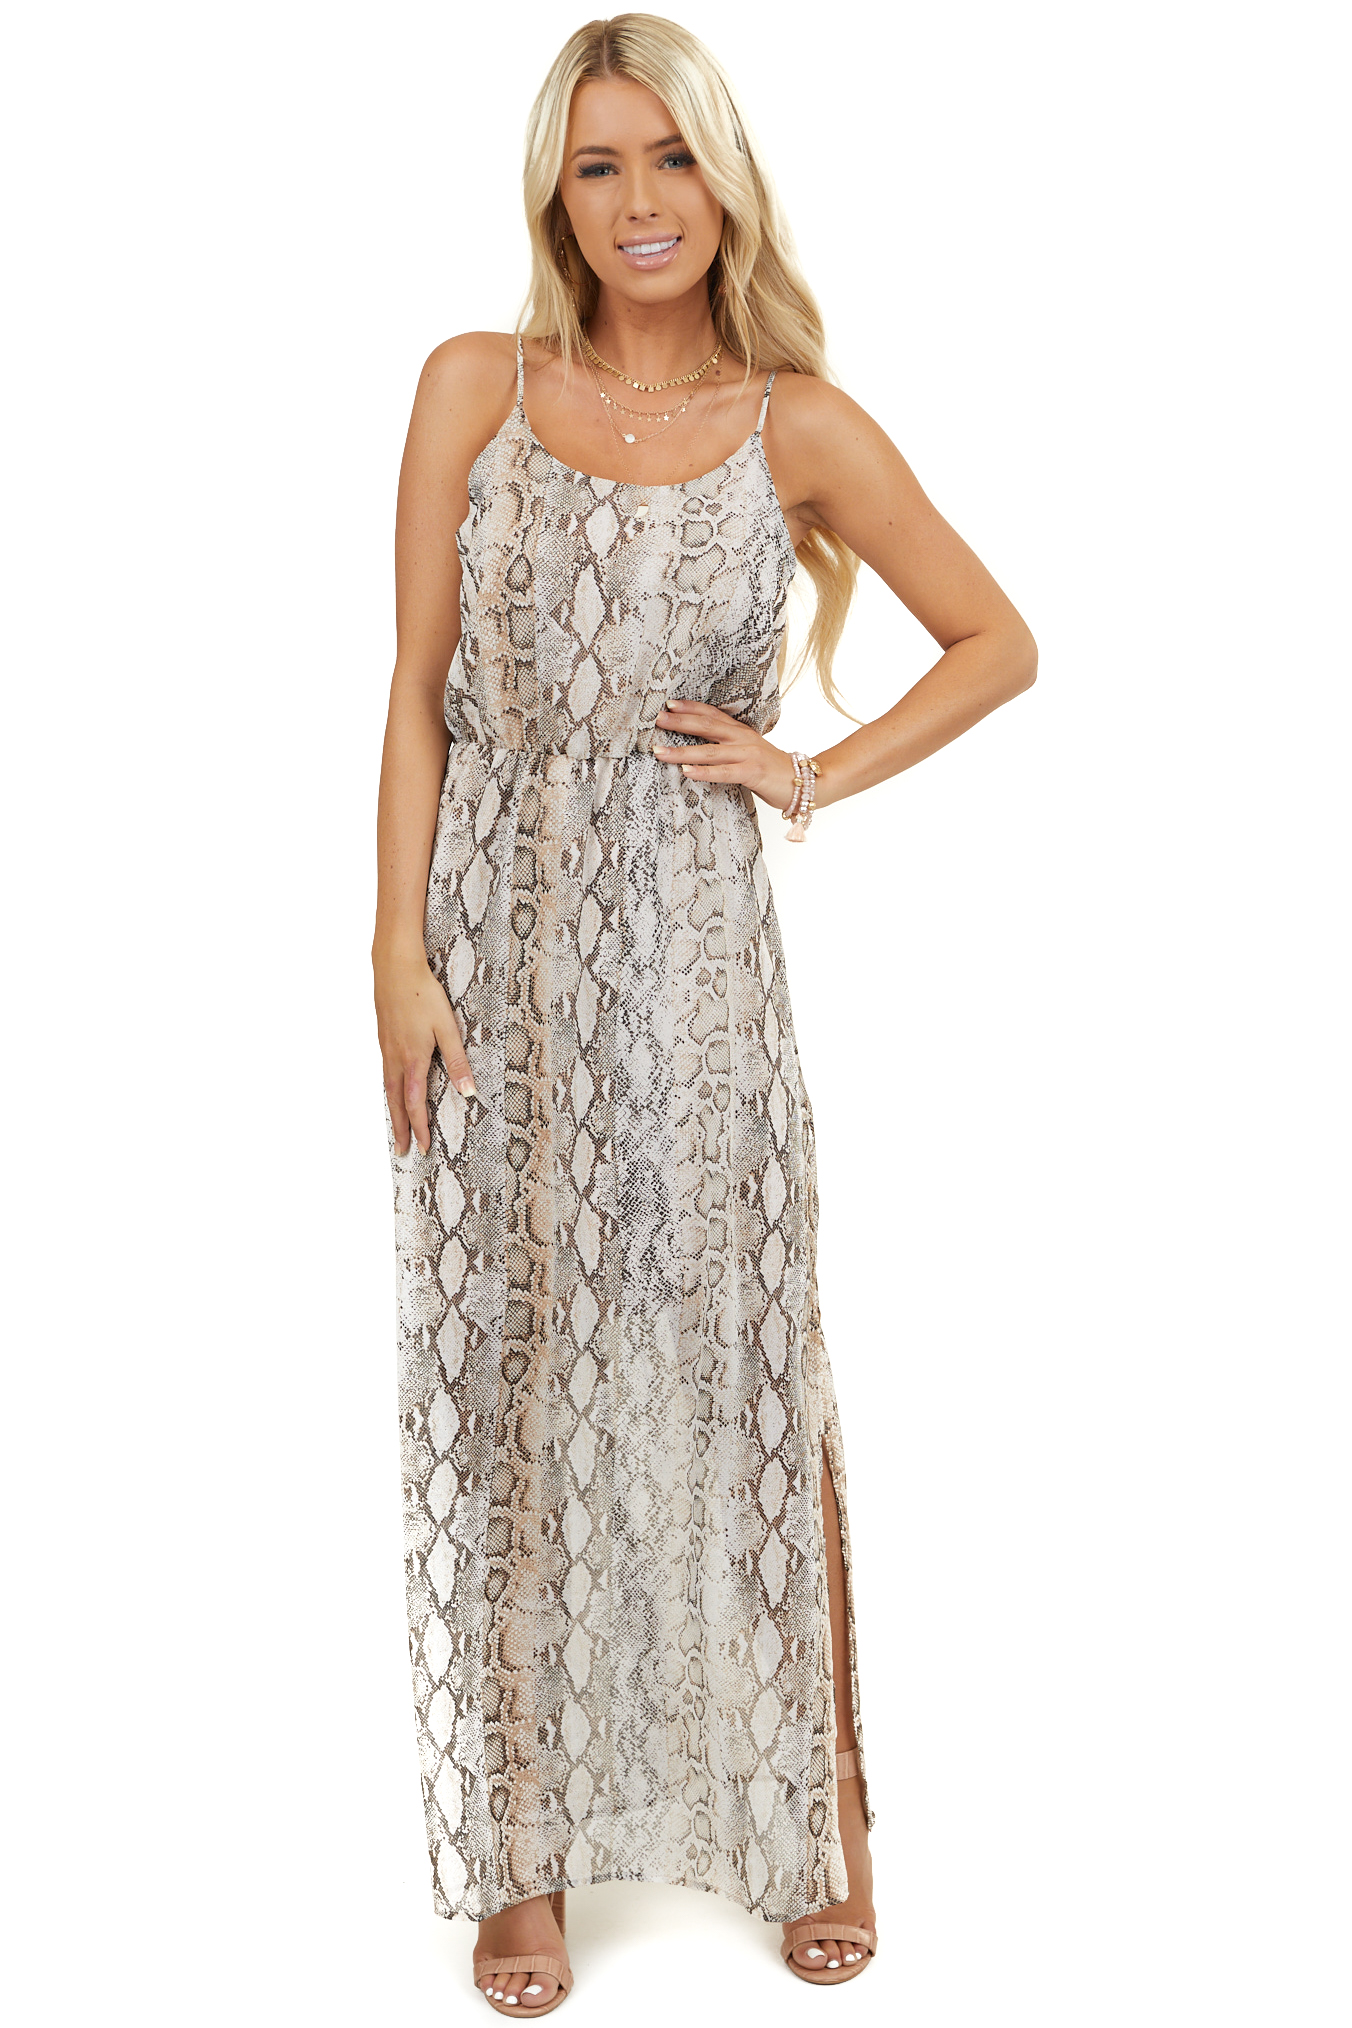 Desert Sand Snakeskin Print Sleeveless Dress with Side Slits